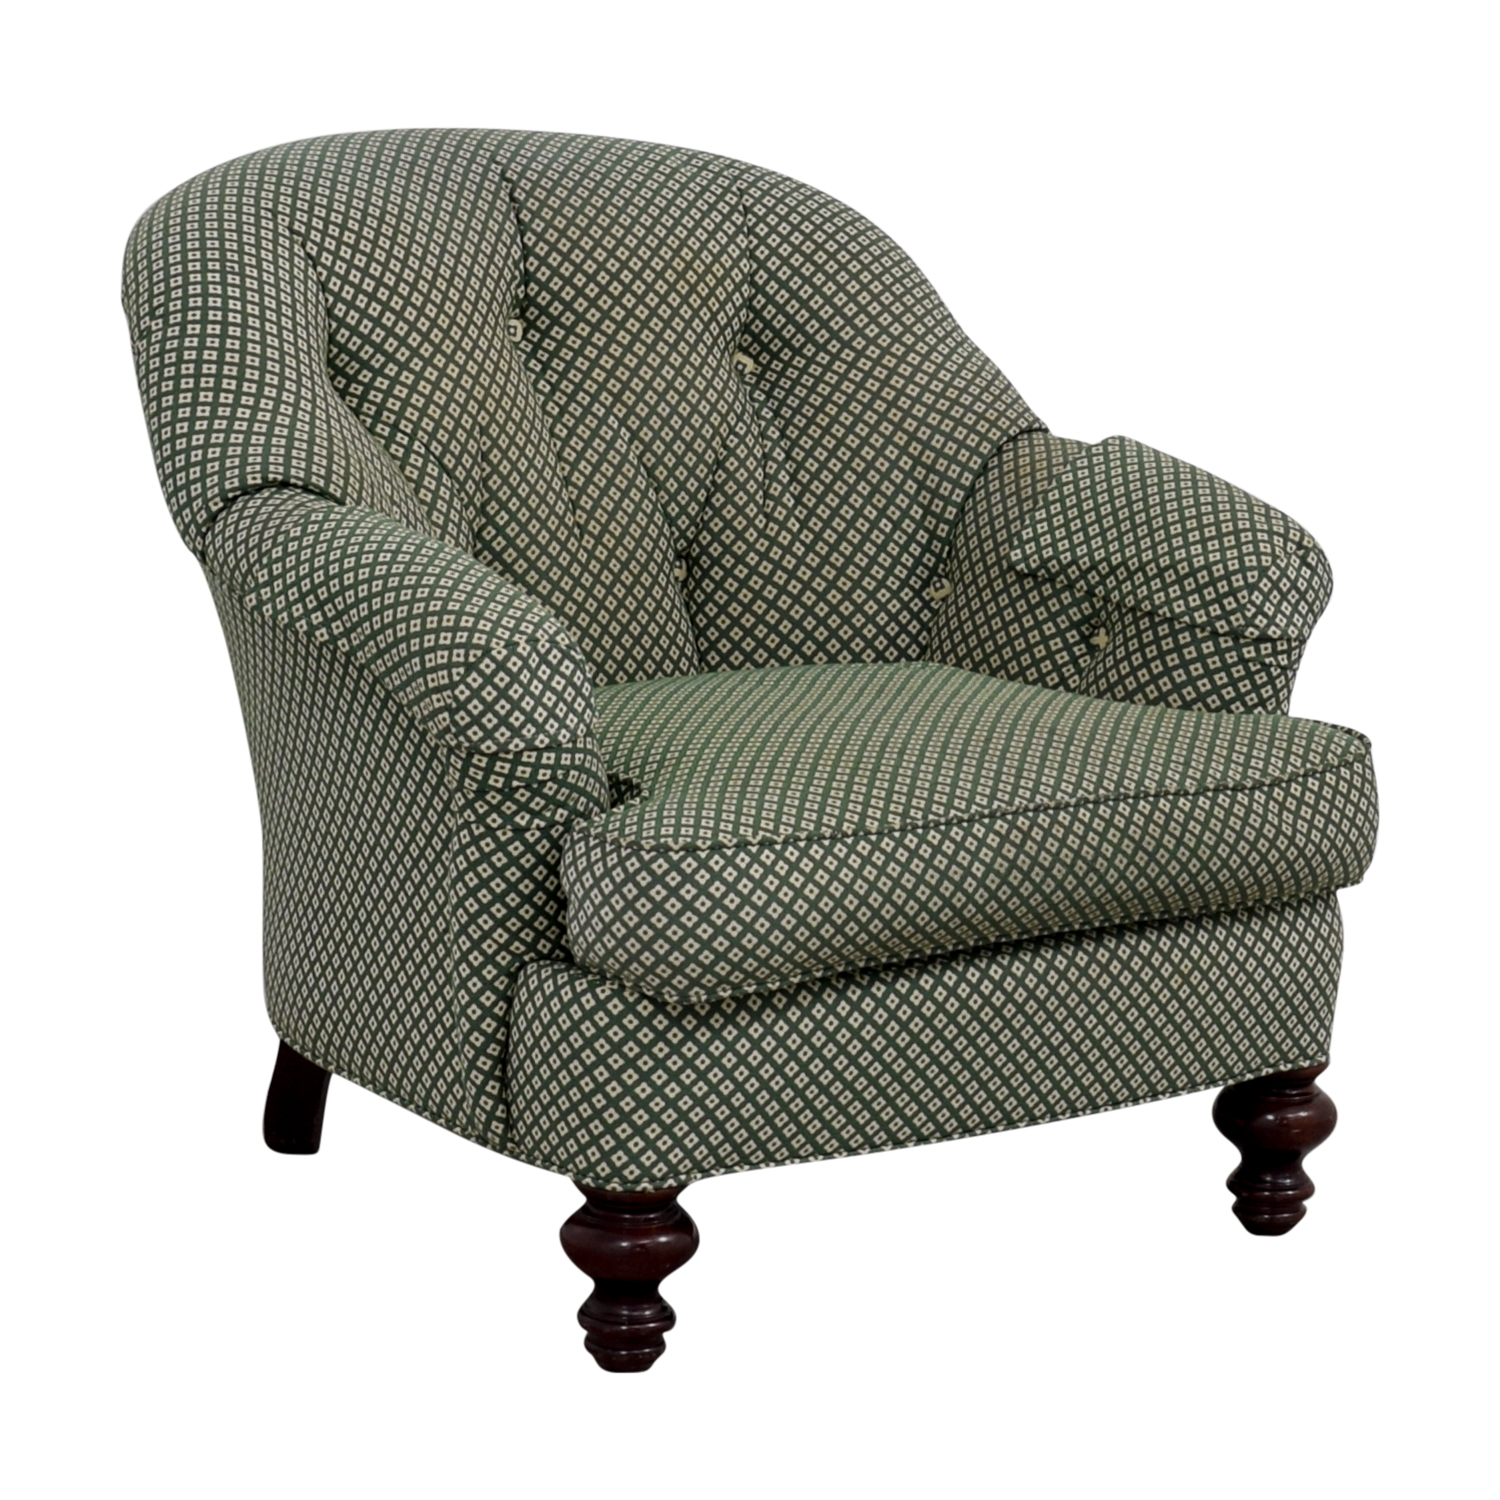 90% OFF - Sherrill Furniture Sherrill Furniture Tufted ...